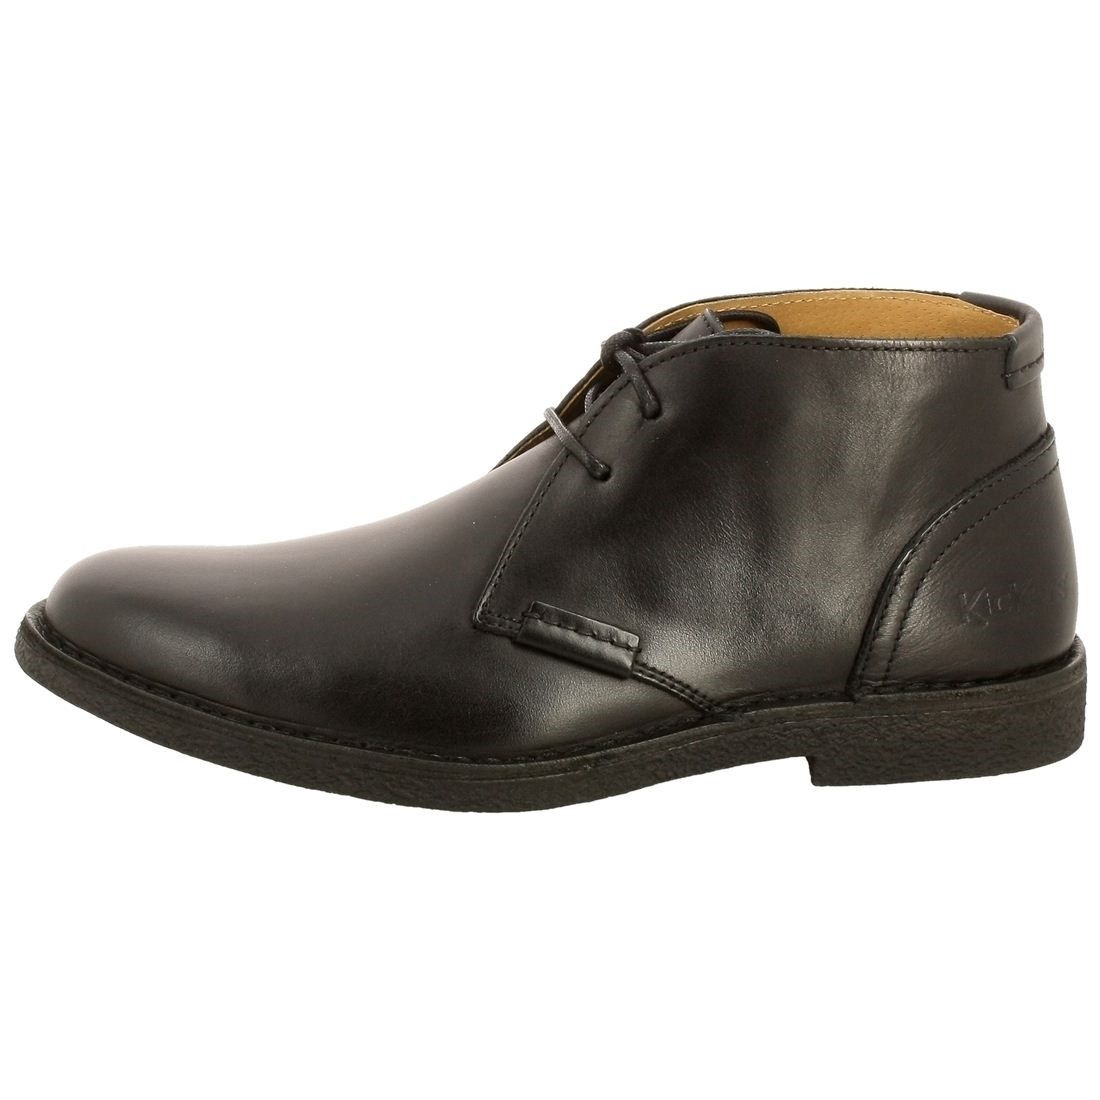 mistic homme kickers 446312. Desert Boots